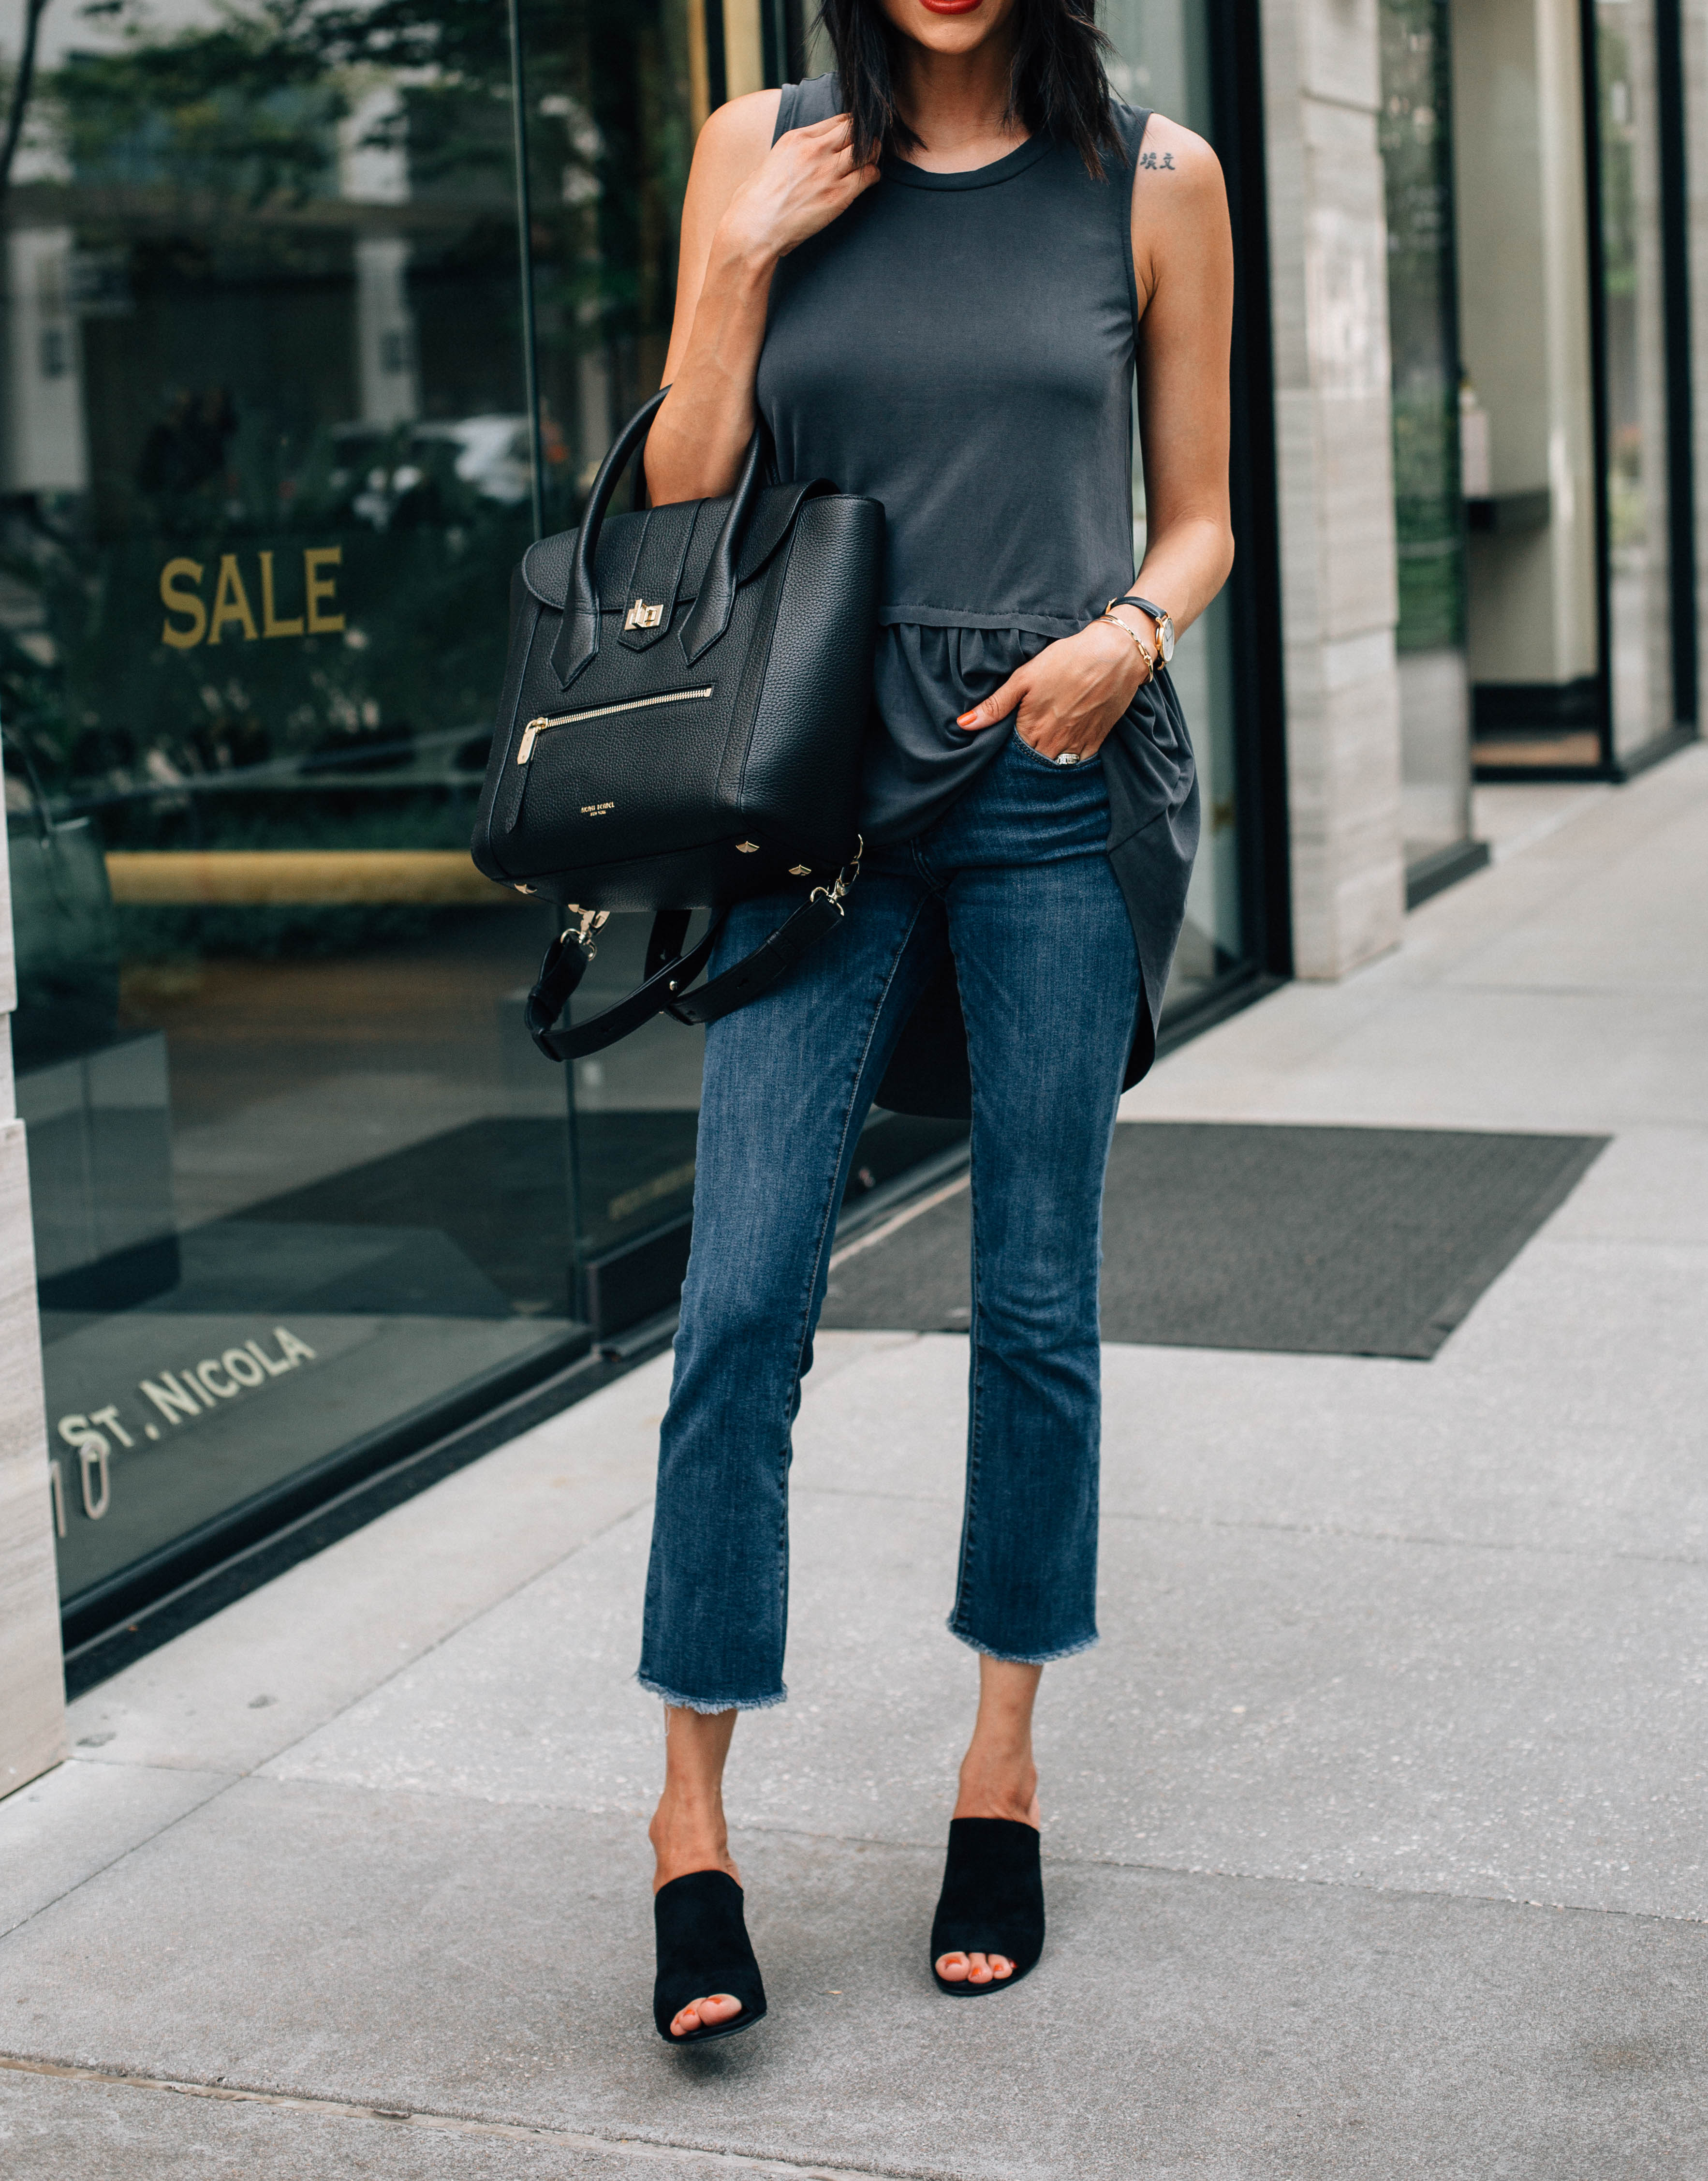 Lilly Beltran of Daily racing blog wearing crop jeans with a peplum top and suede mules